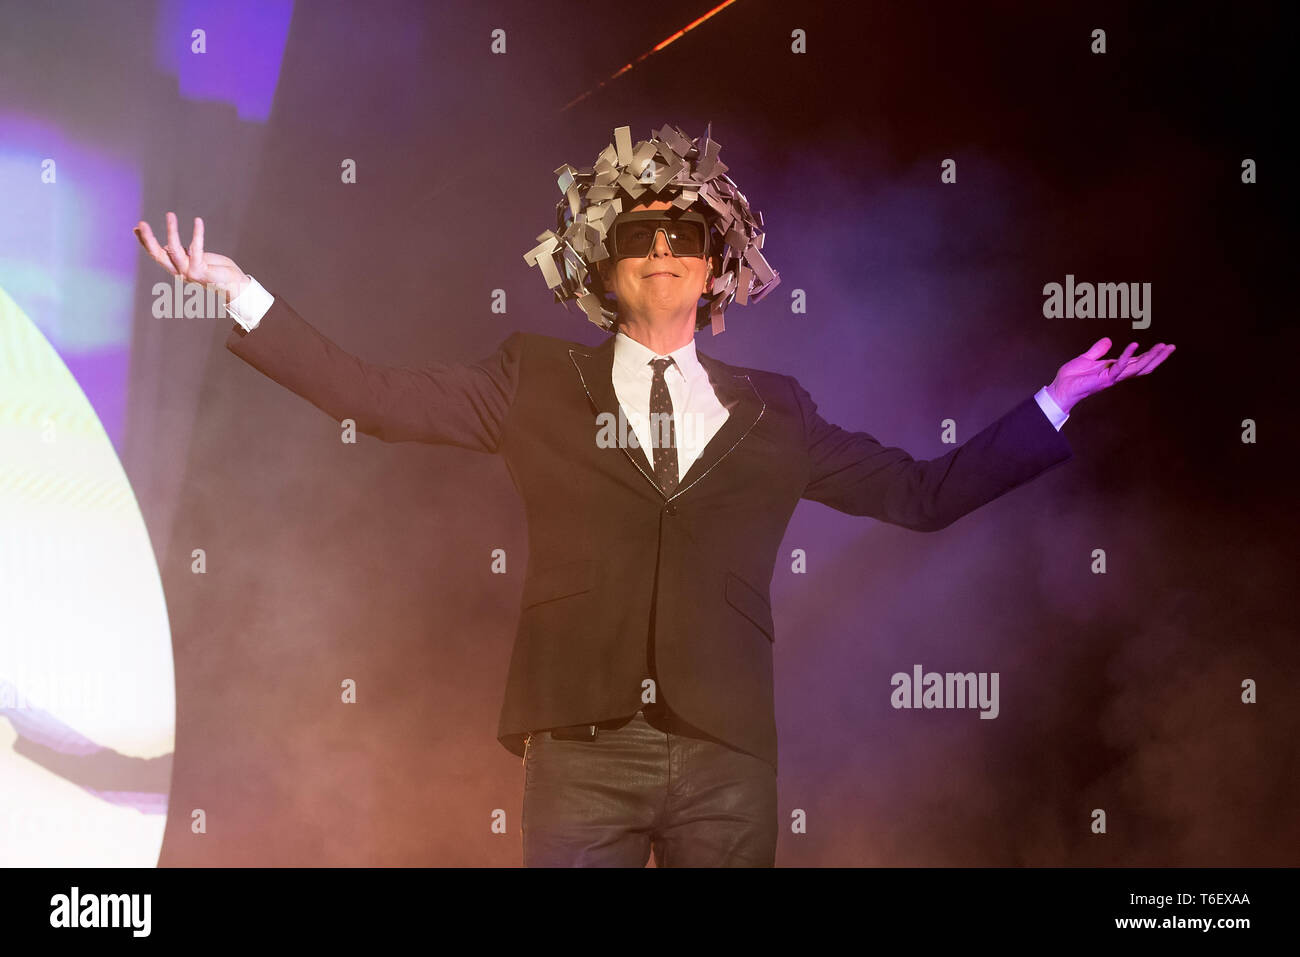 BENICASSIM, SPAIN - JUL 21: Pet Shop Boys (synthpop legendary band) perform in concert at FIB Festival on July 21, 2018 in Benicassim, Spain. - Stock Image